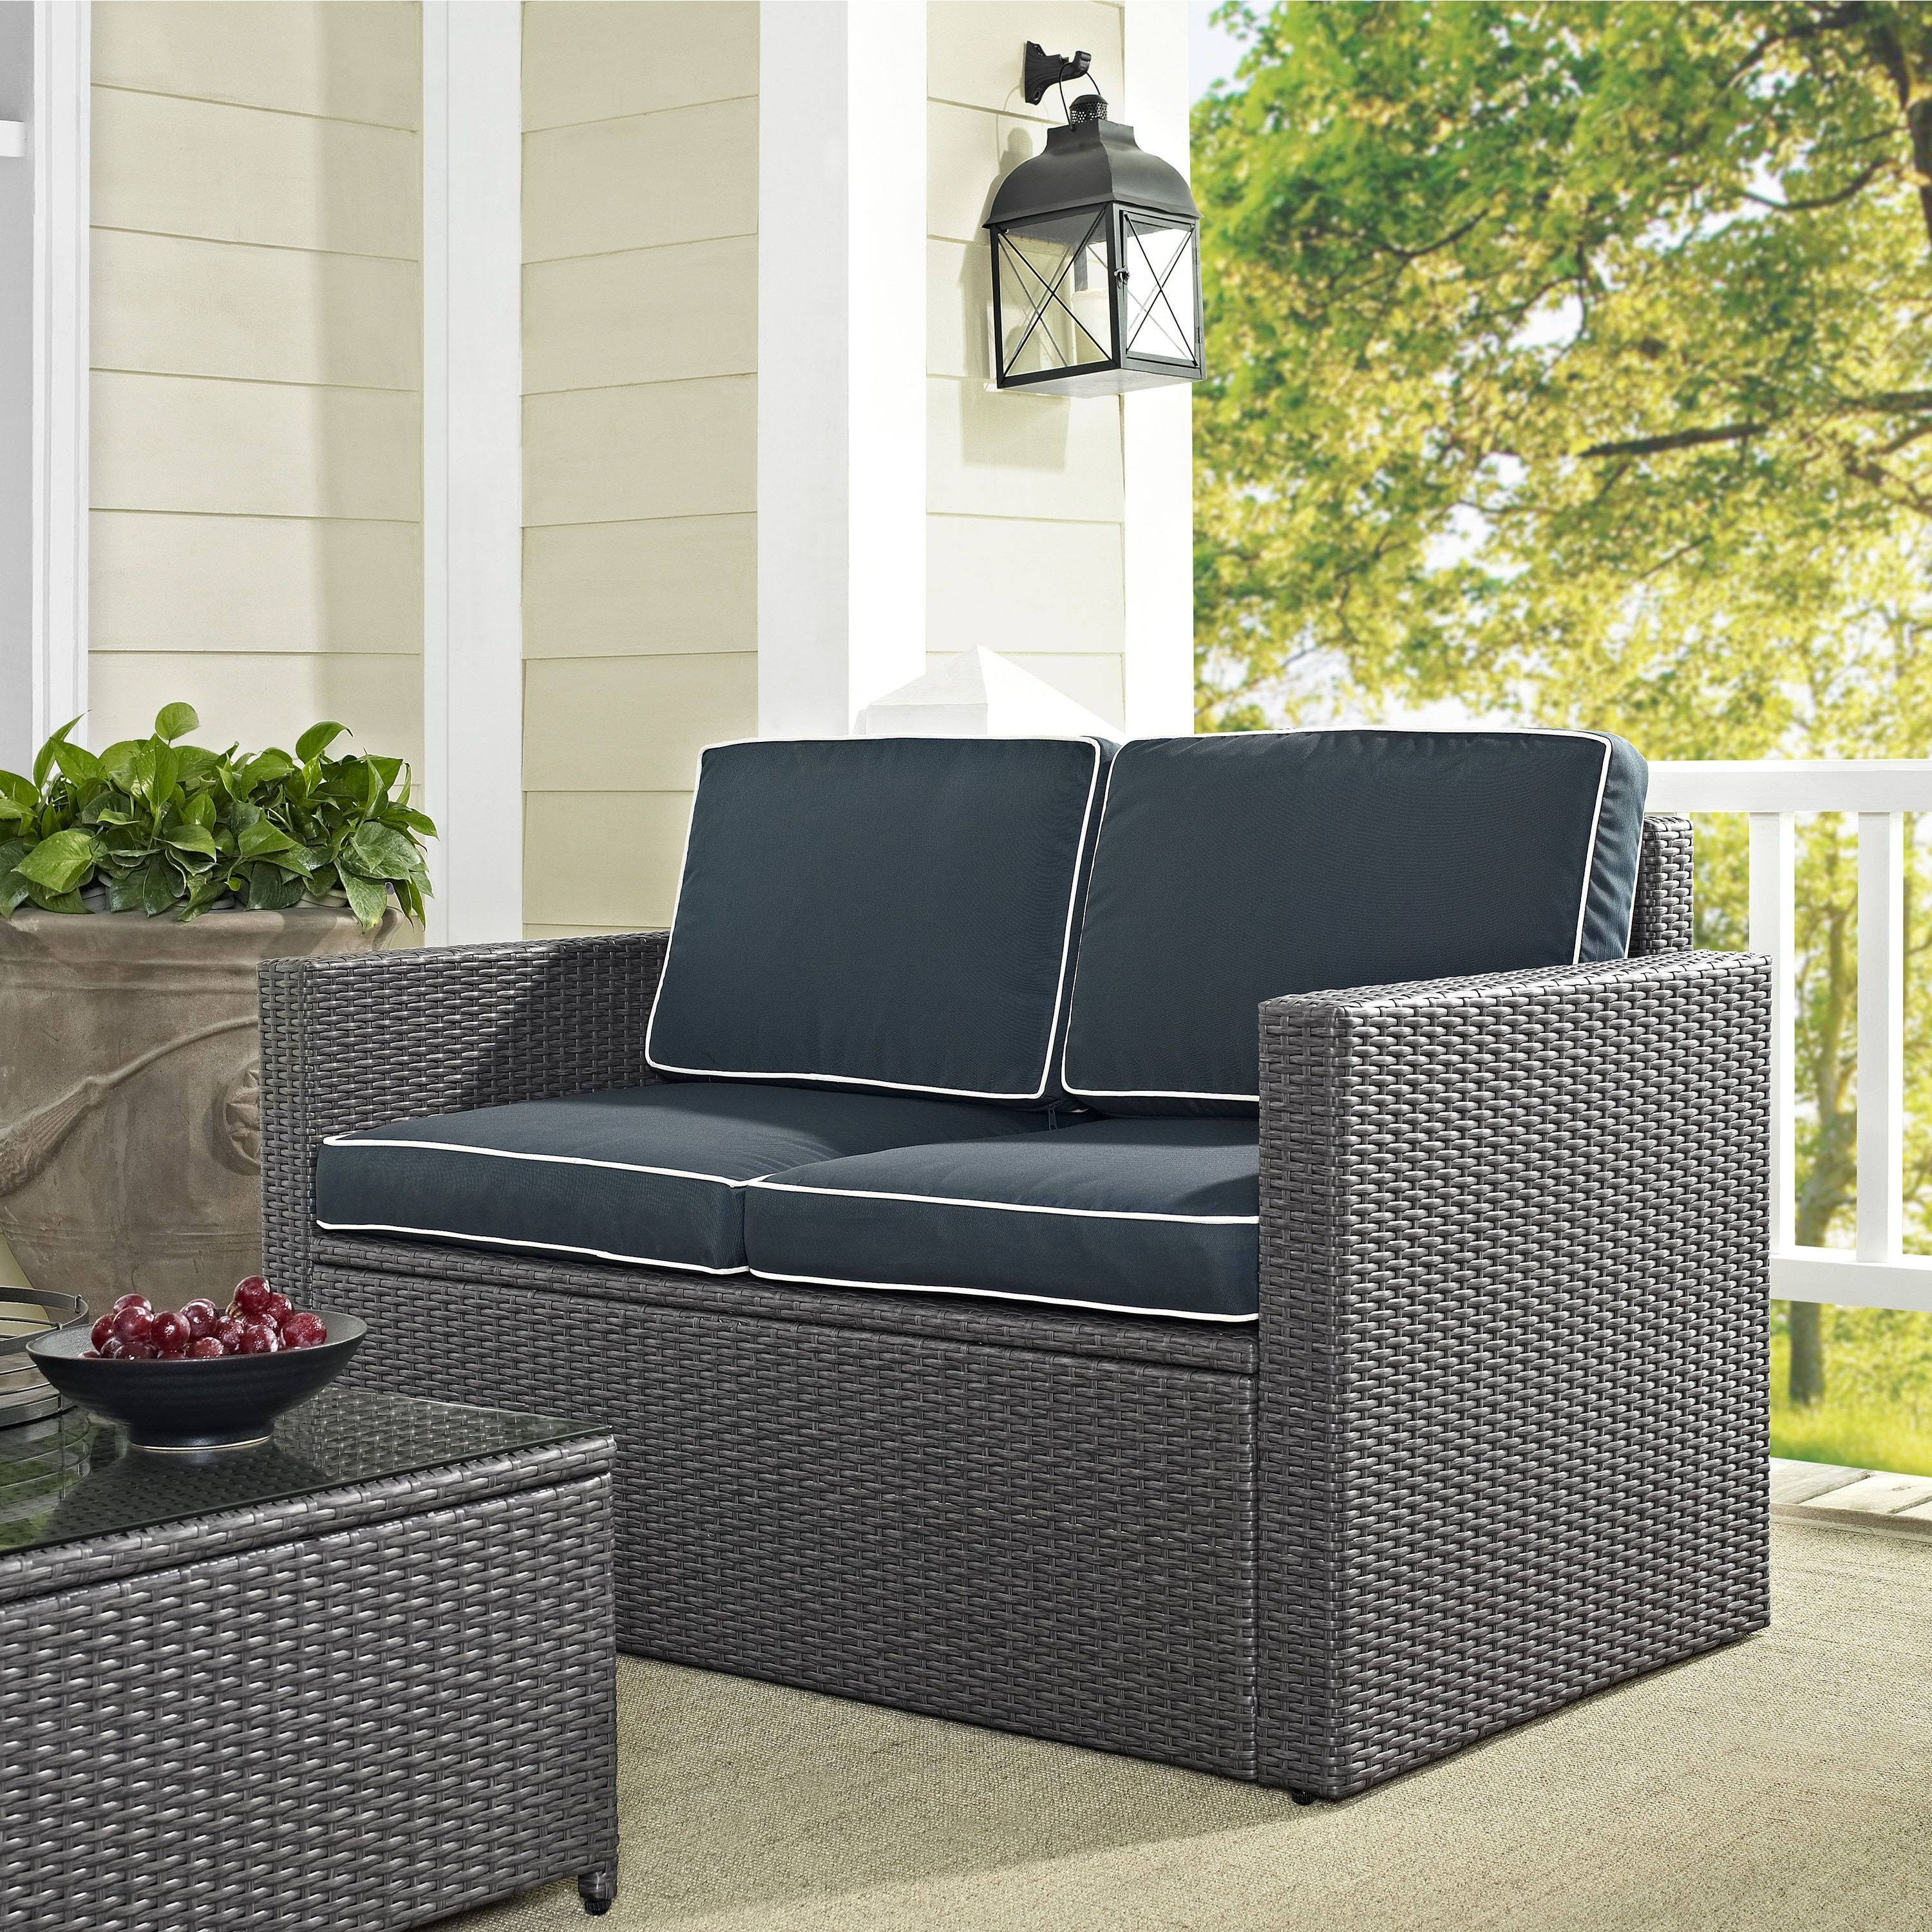 Provencher Patio Loveseats With Cushions Throughout Most Current Palm Harbor Outdoor Loveseat In Grey Wicker With Navy (View 13 of 20)